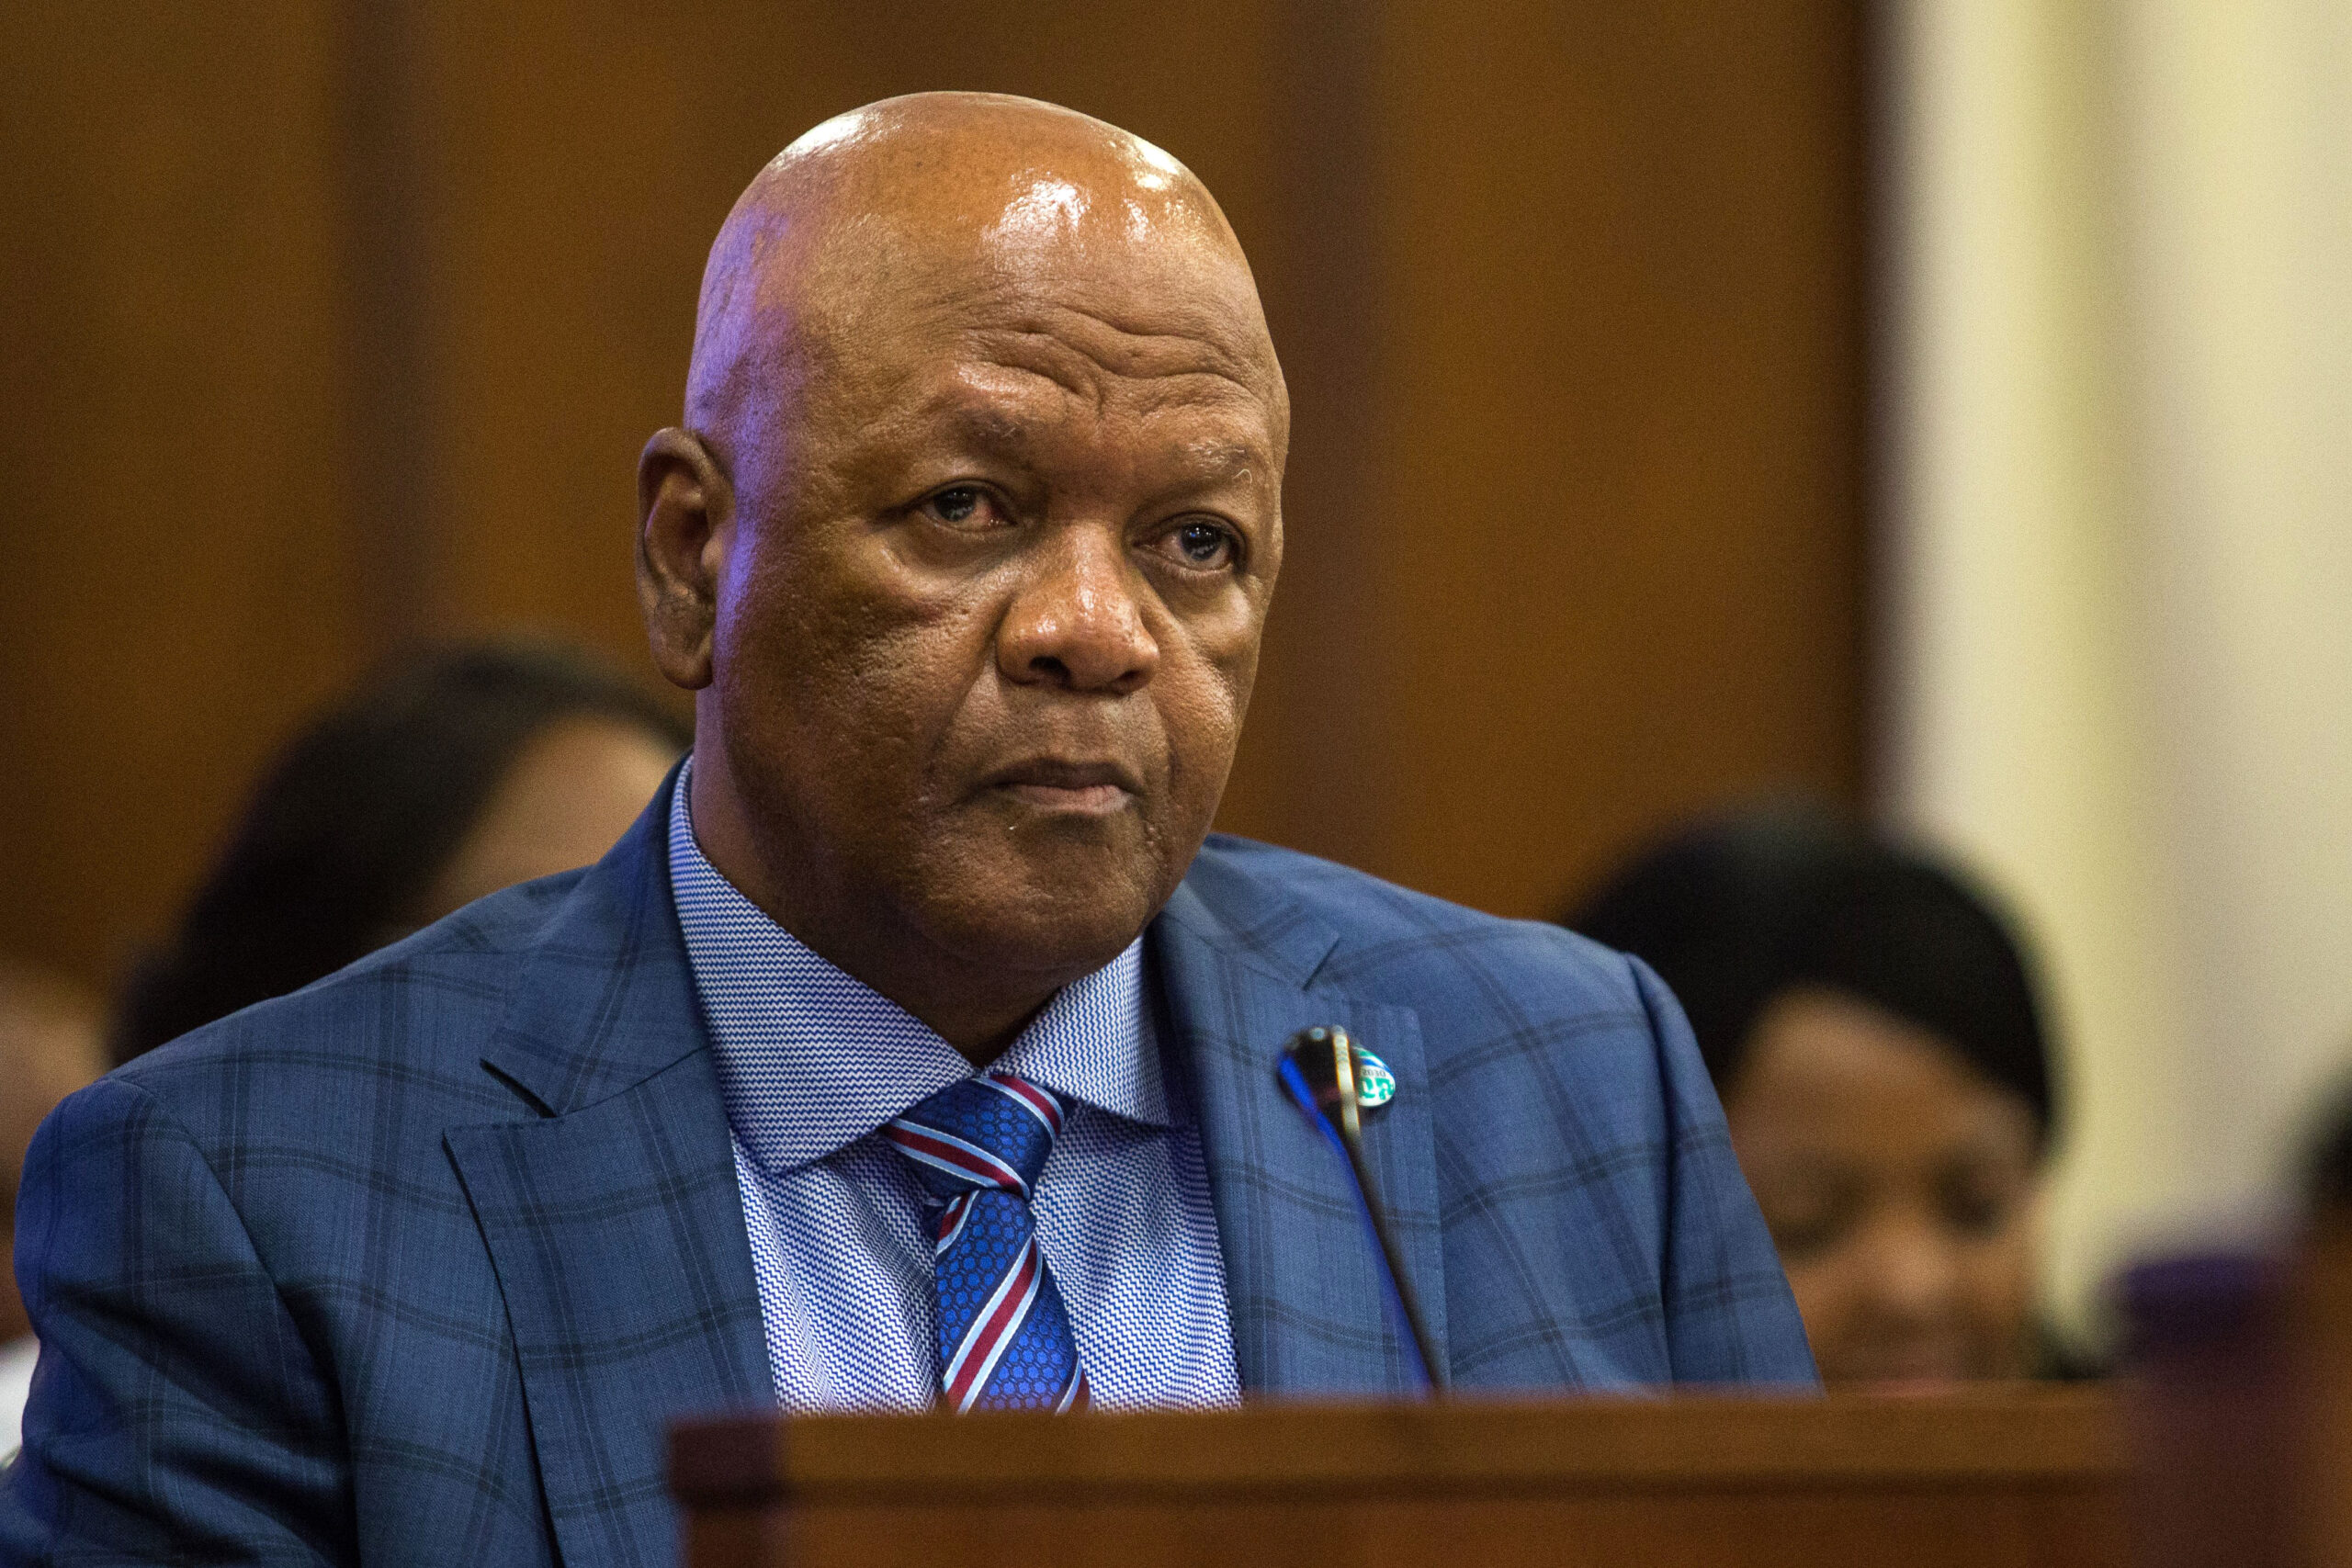 Jeff Radebe said despite the fact that agreements were signed under the tenure of Mahlobo, these agreements could not be followed if invalidated by courts